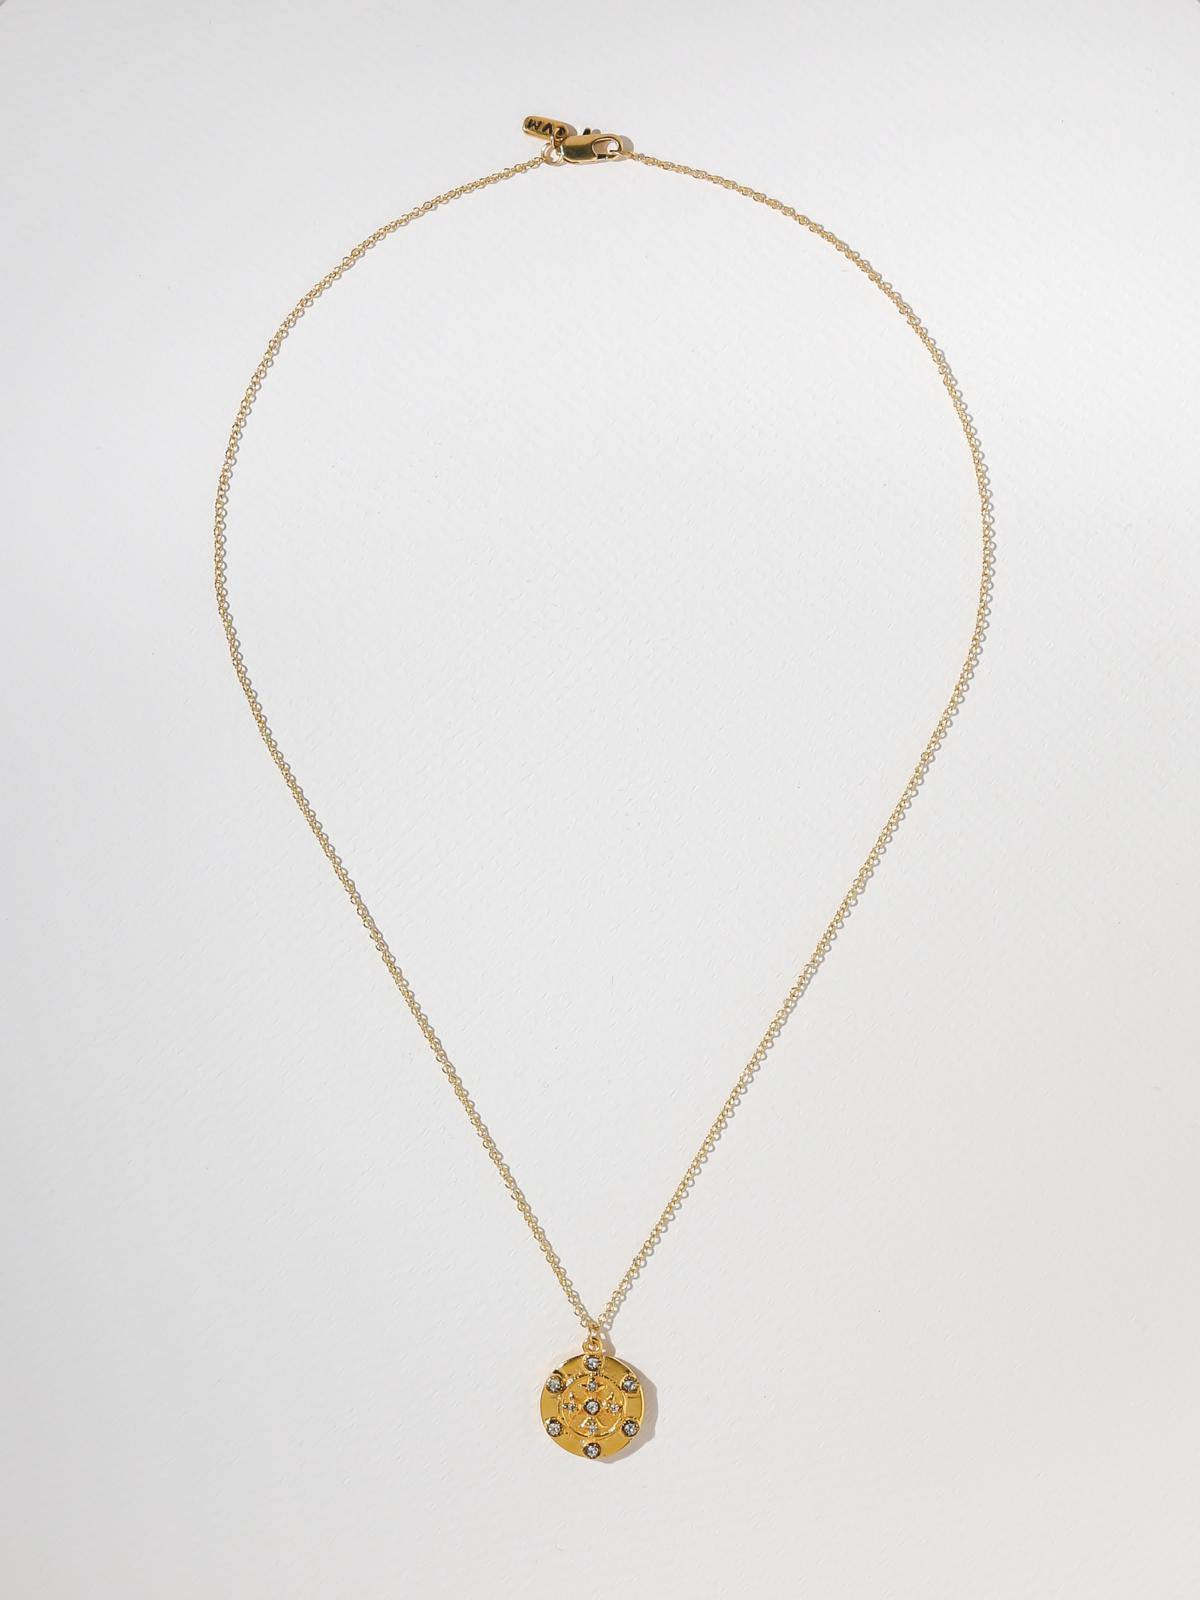 The Anita Necklace